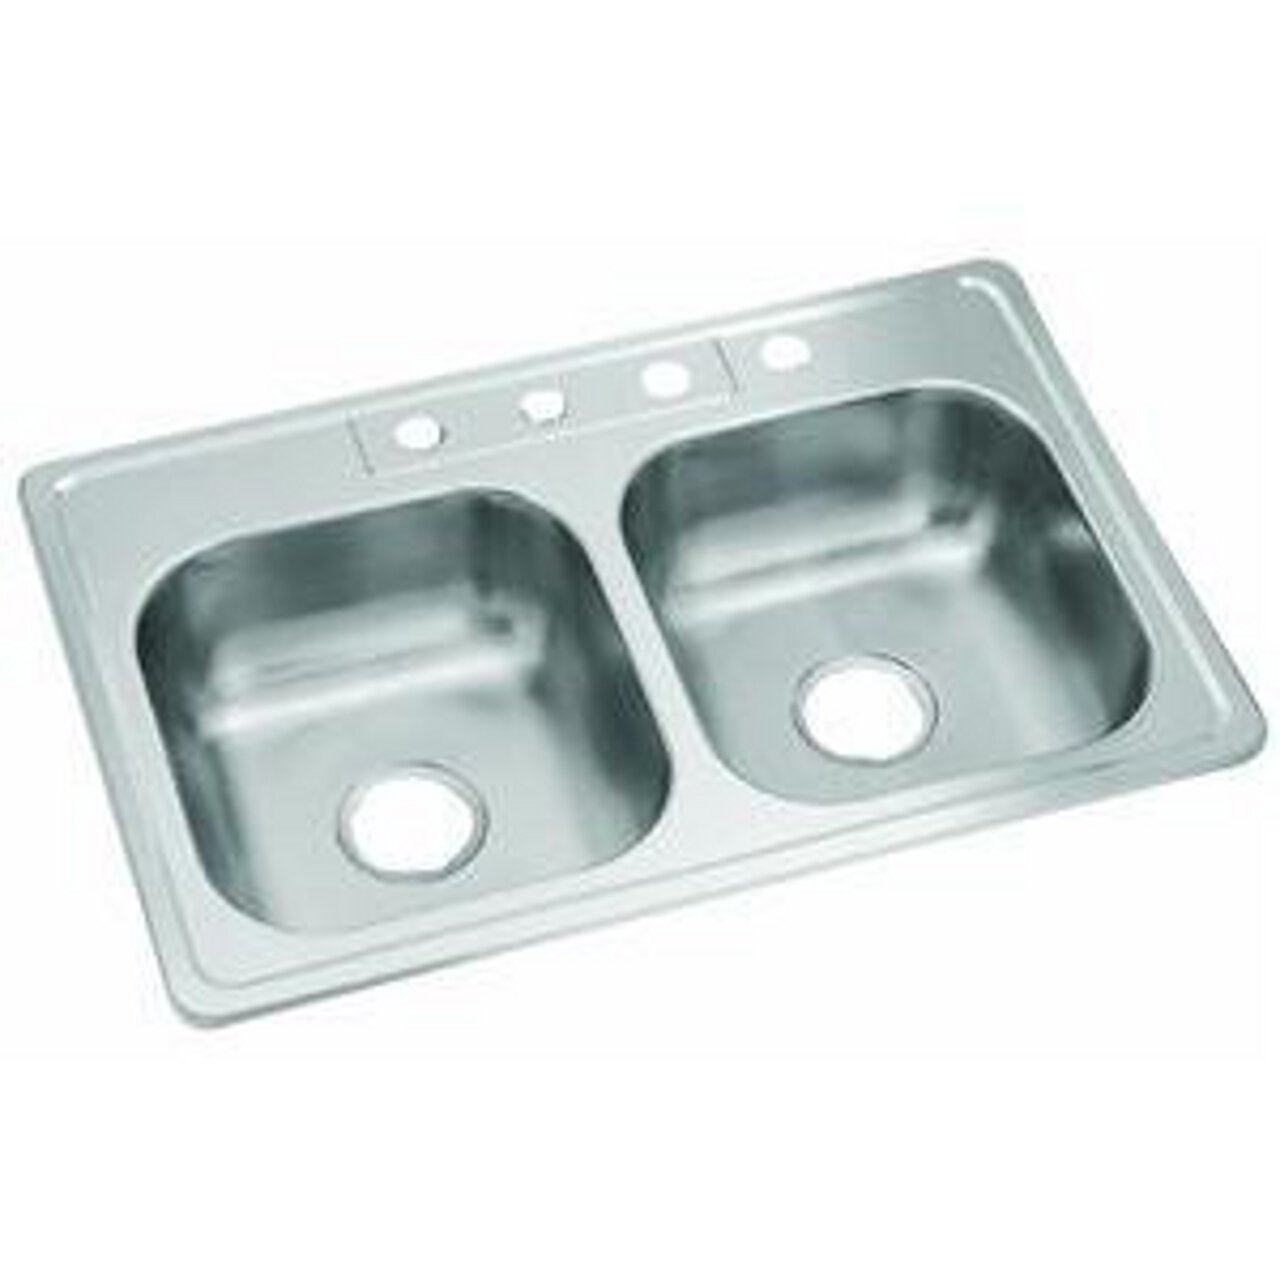 STERLING 14633-3-NA Middleton 33-inch by 22-inch Top-mount Double Equal Bowl Kitchen Sink, Stainless Steel